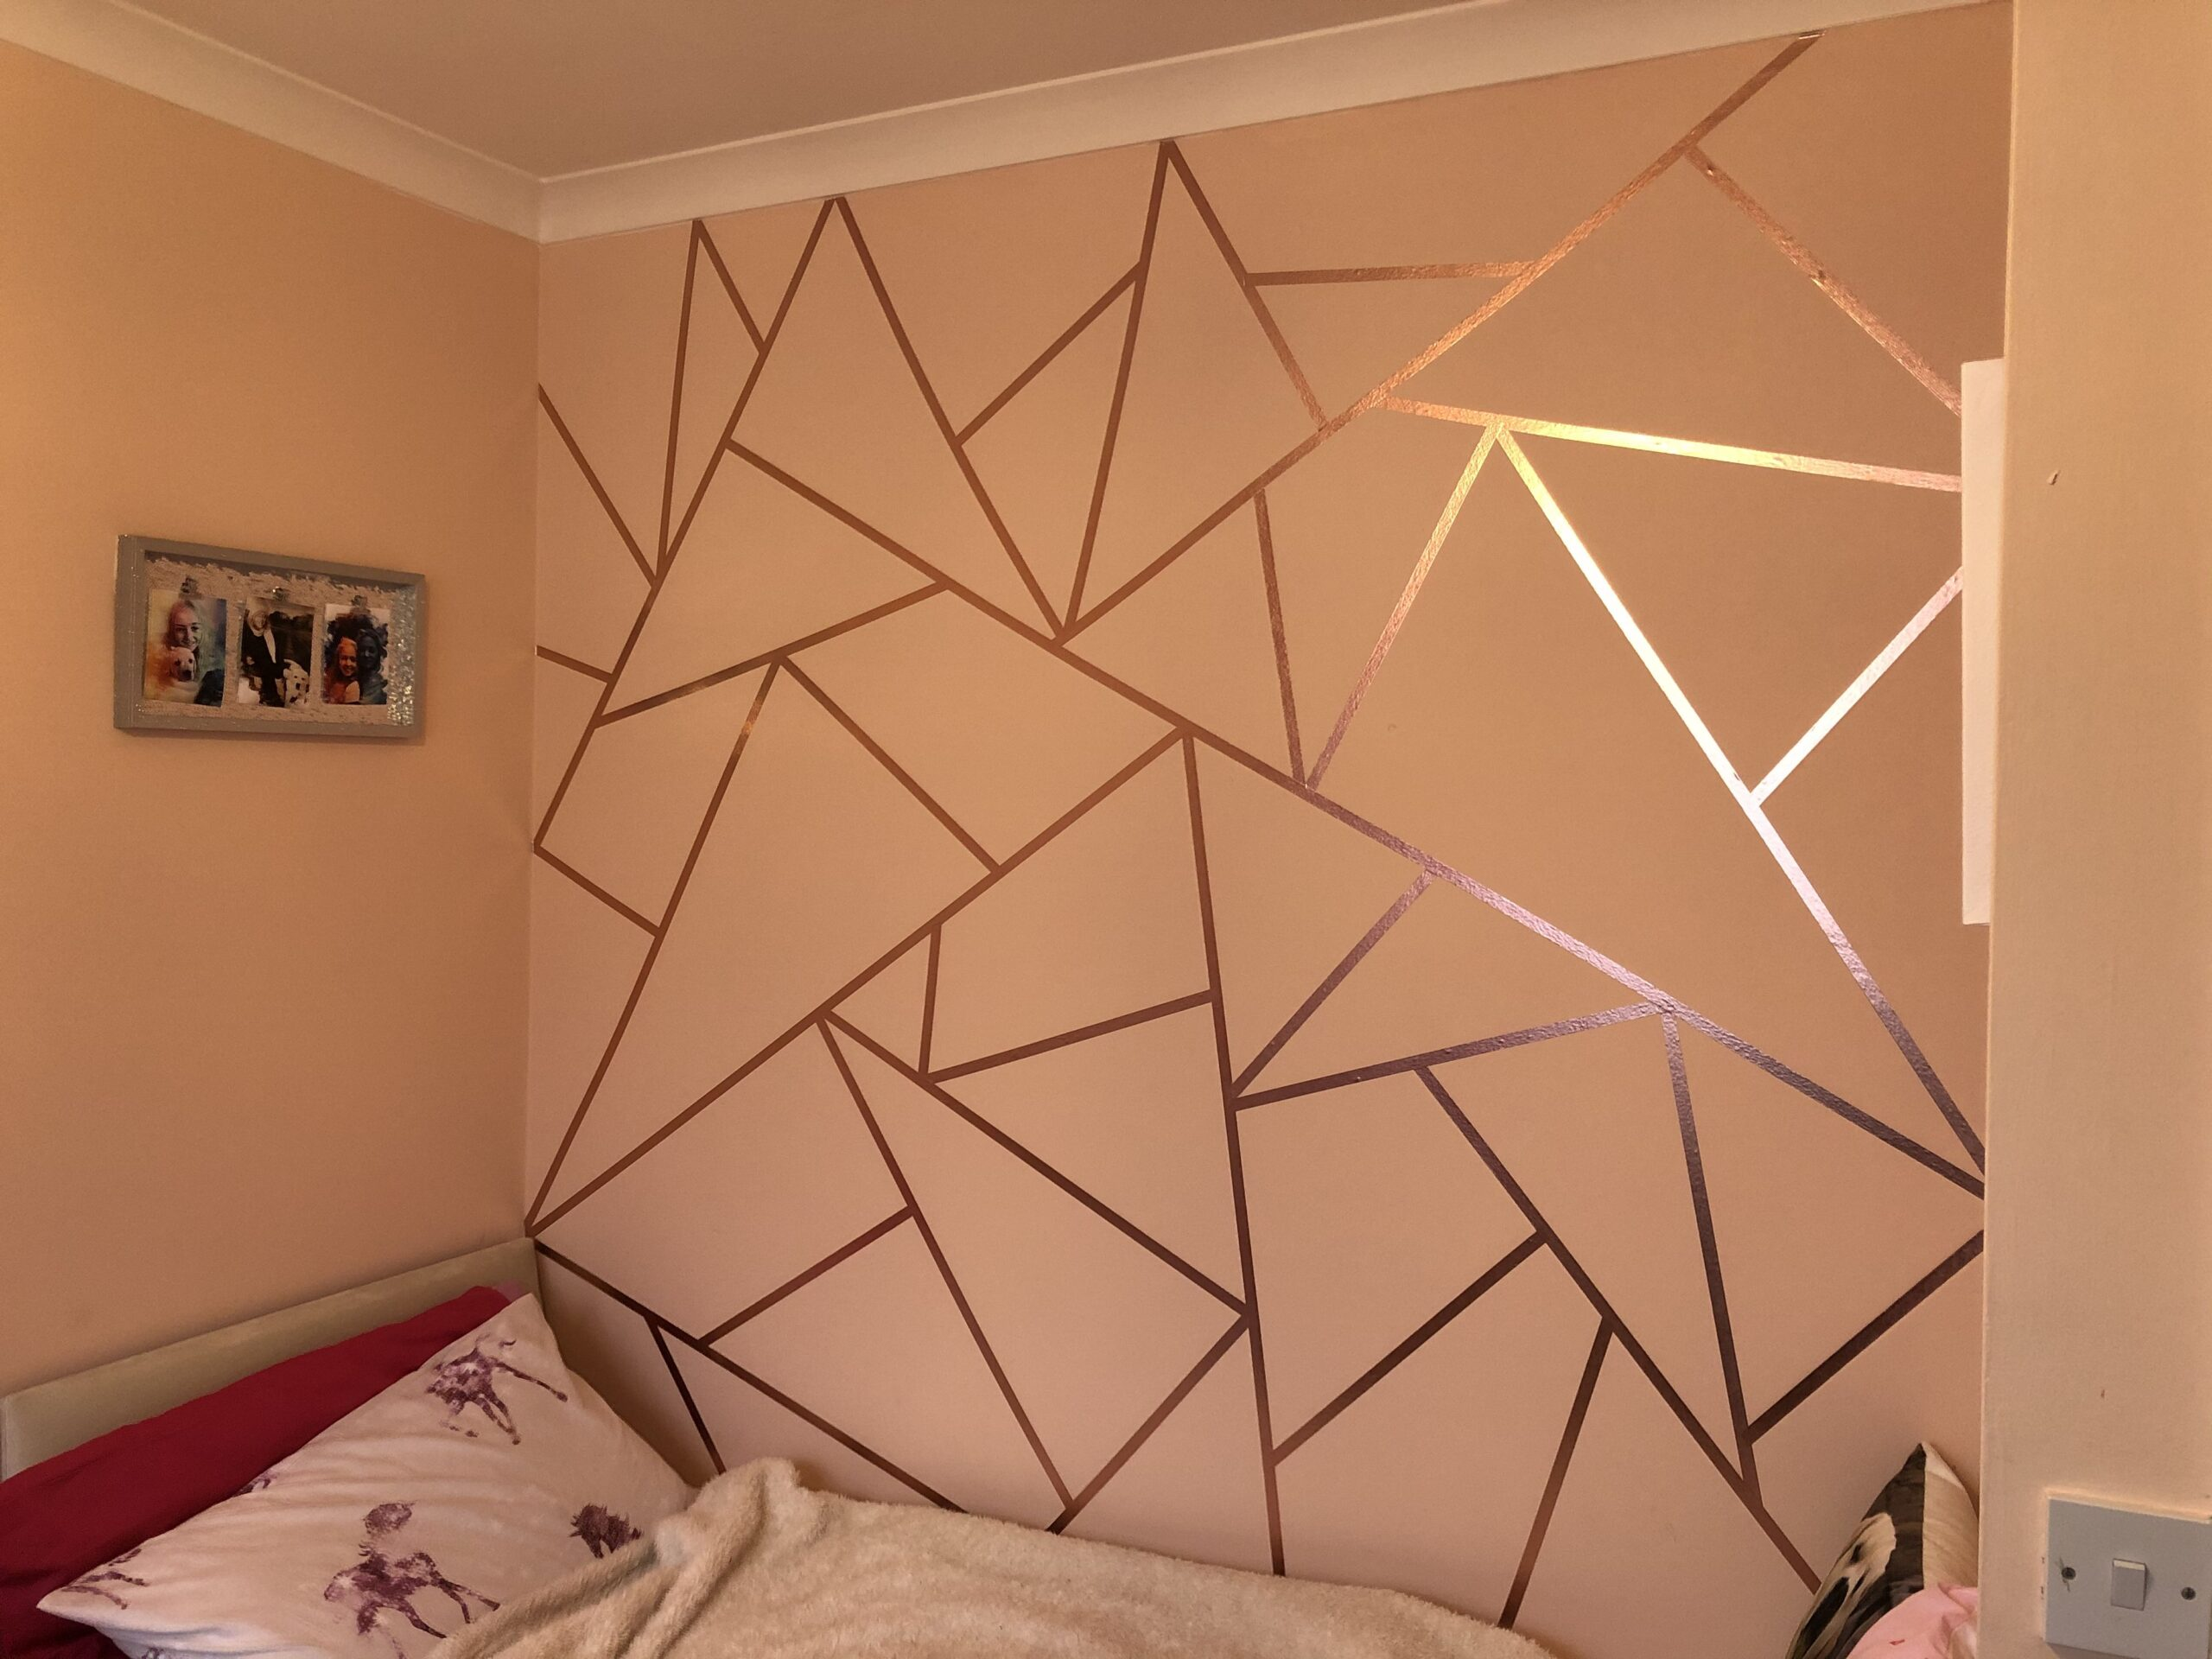 Rose gold washi Tape geometric wall design -   13 room decor Gold washi tape ideas